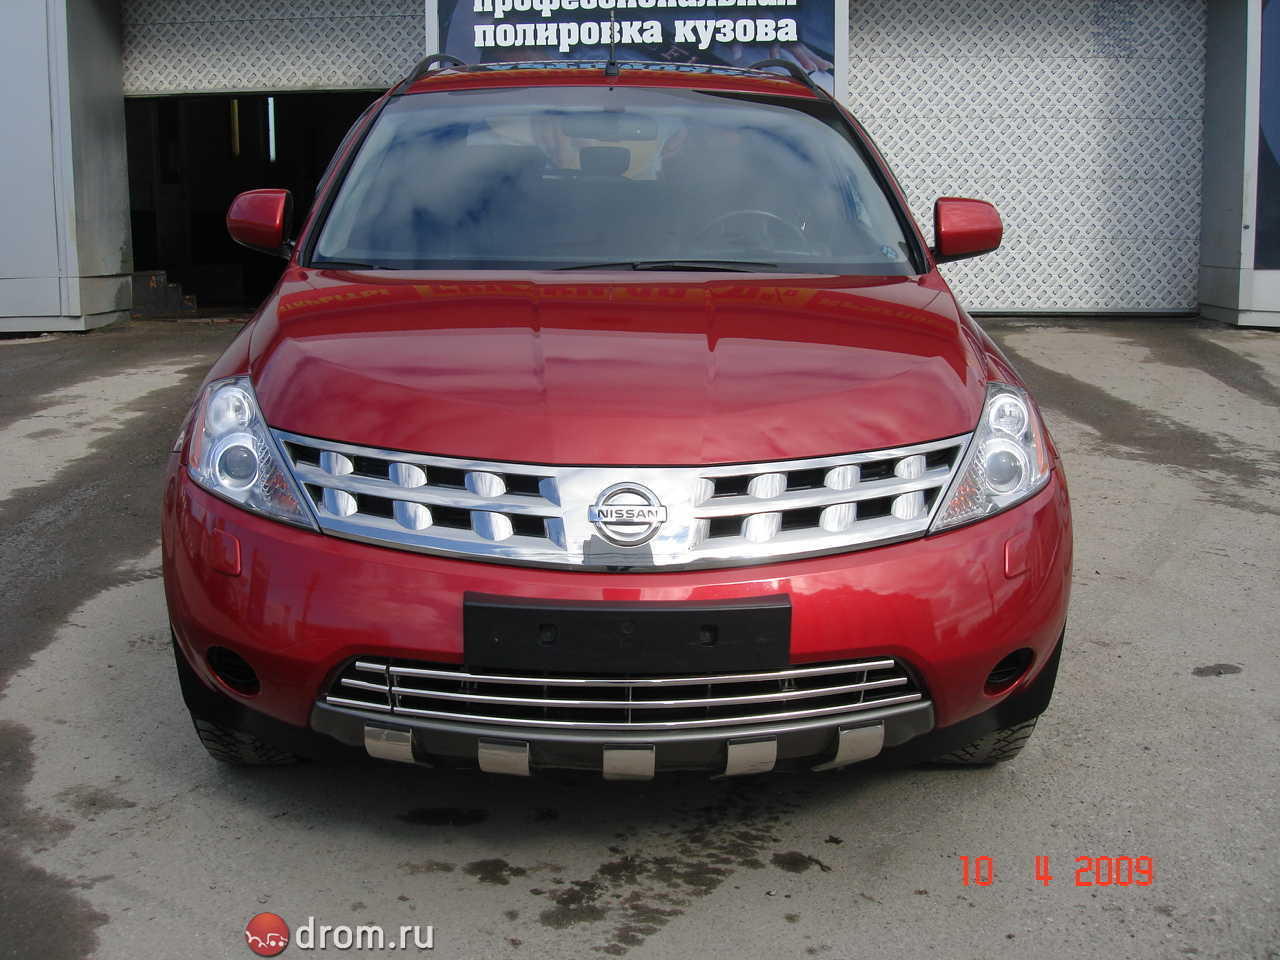 2008 Nissan Murano Photos, 3.5, Gasoline, Automatic For Sale